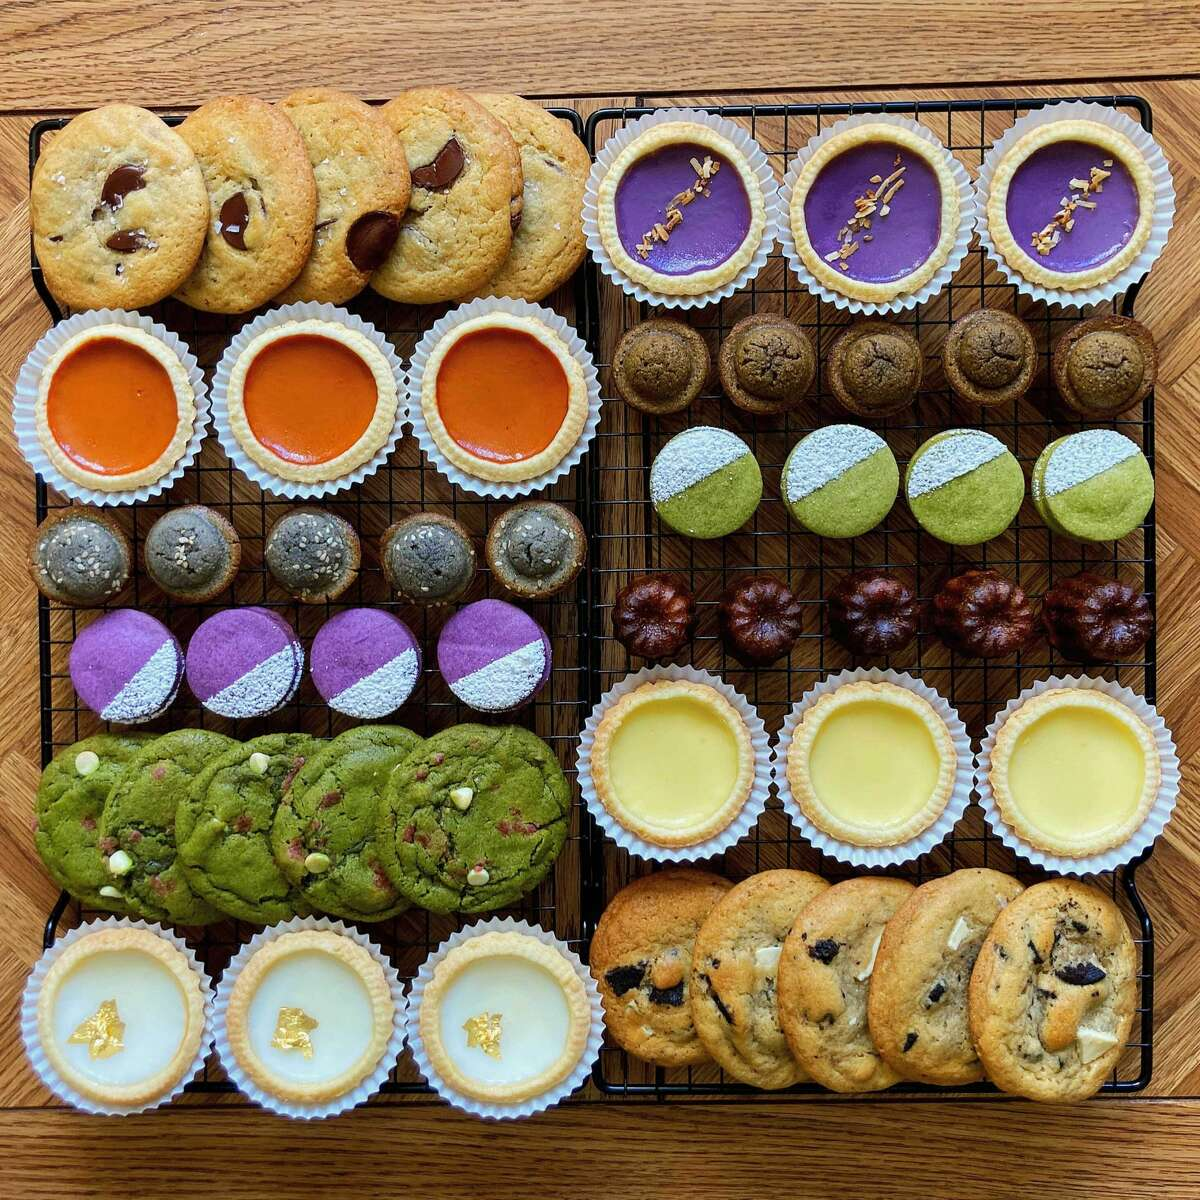 Spoons Patisseries offers a variety of pastries to customers, including caneles, special alfajores cookies and its colorful and special-flavored dan tat.